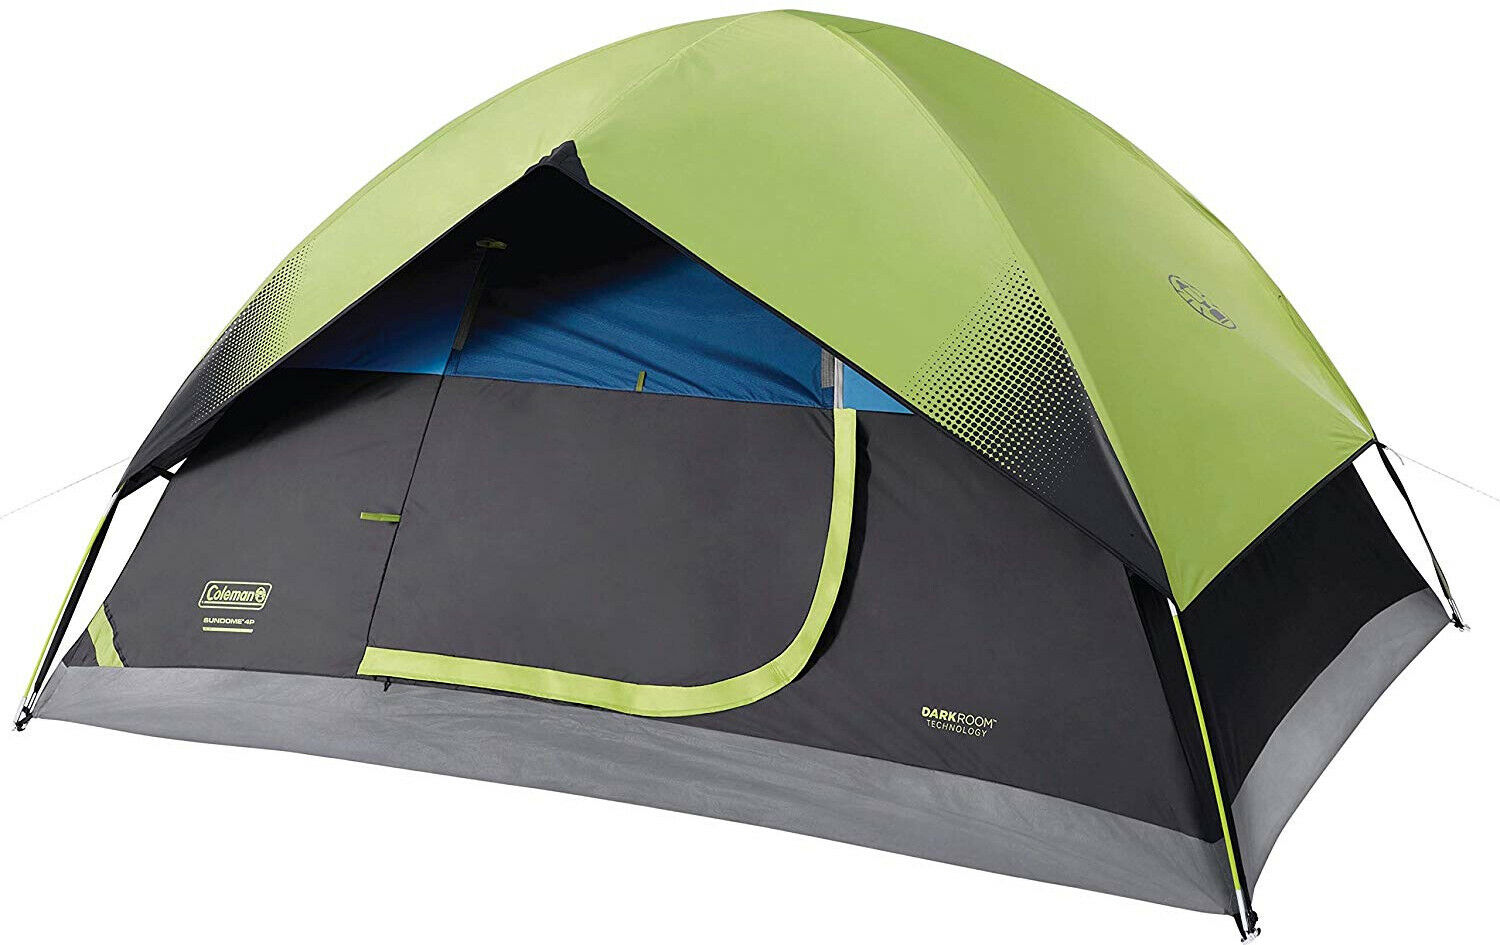 Coleman DarkRoom Dome Tent Sundome Camping 4 Person Family Waterproof Easy Setup